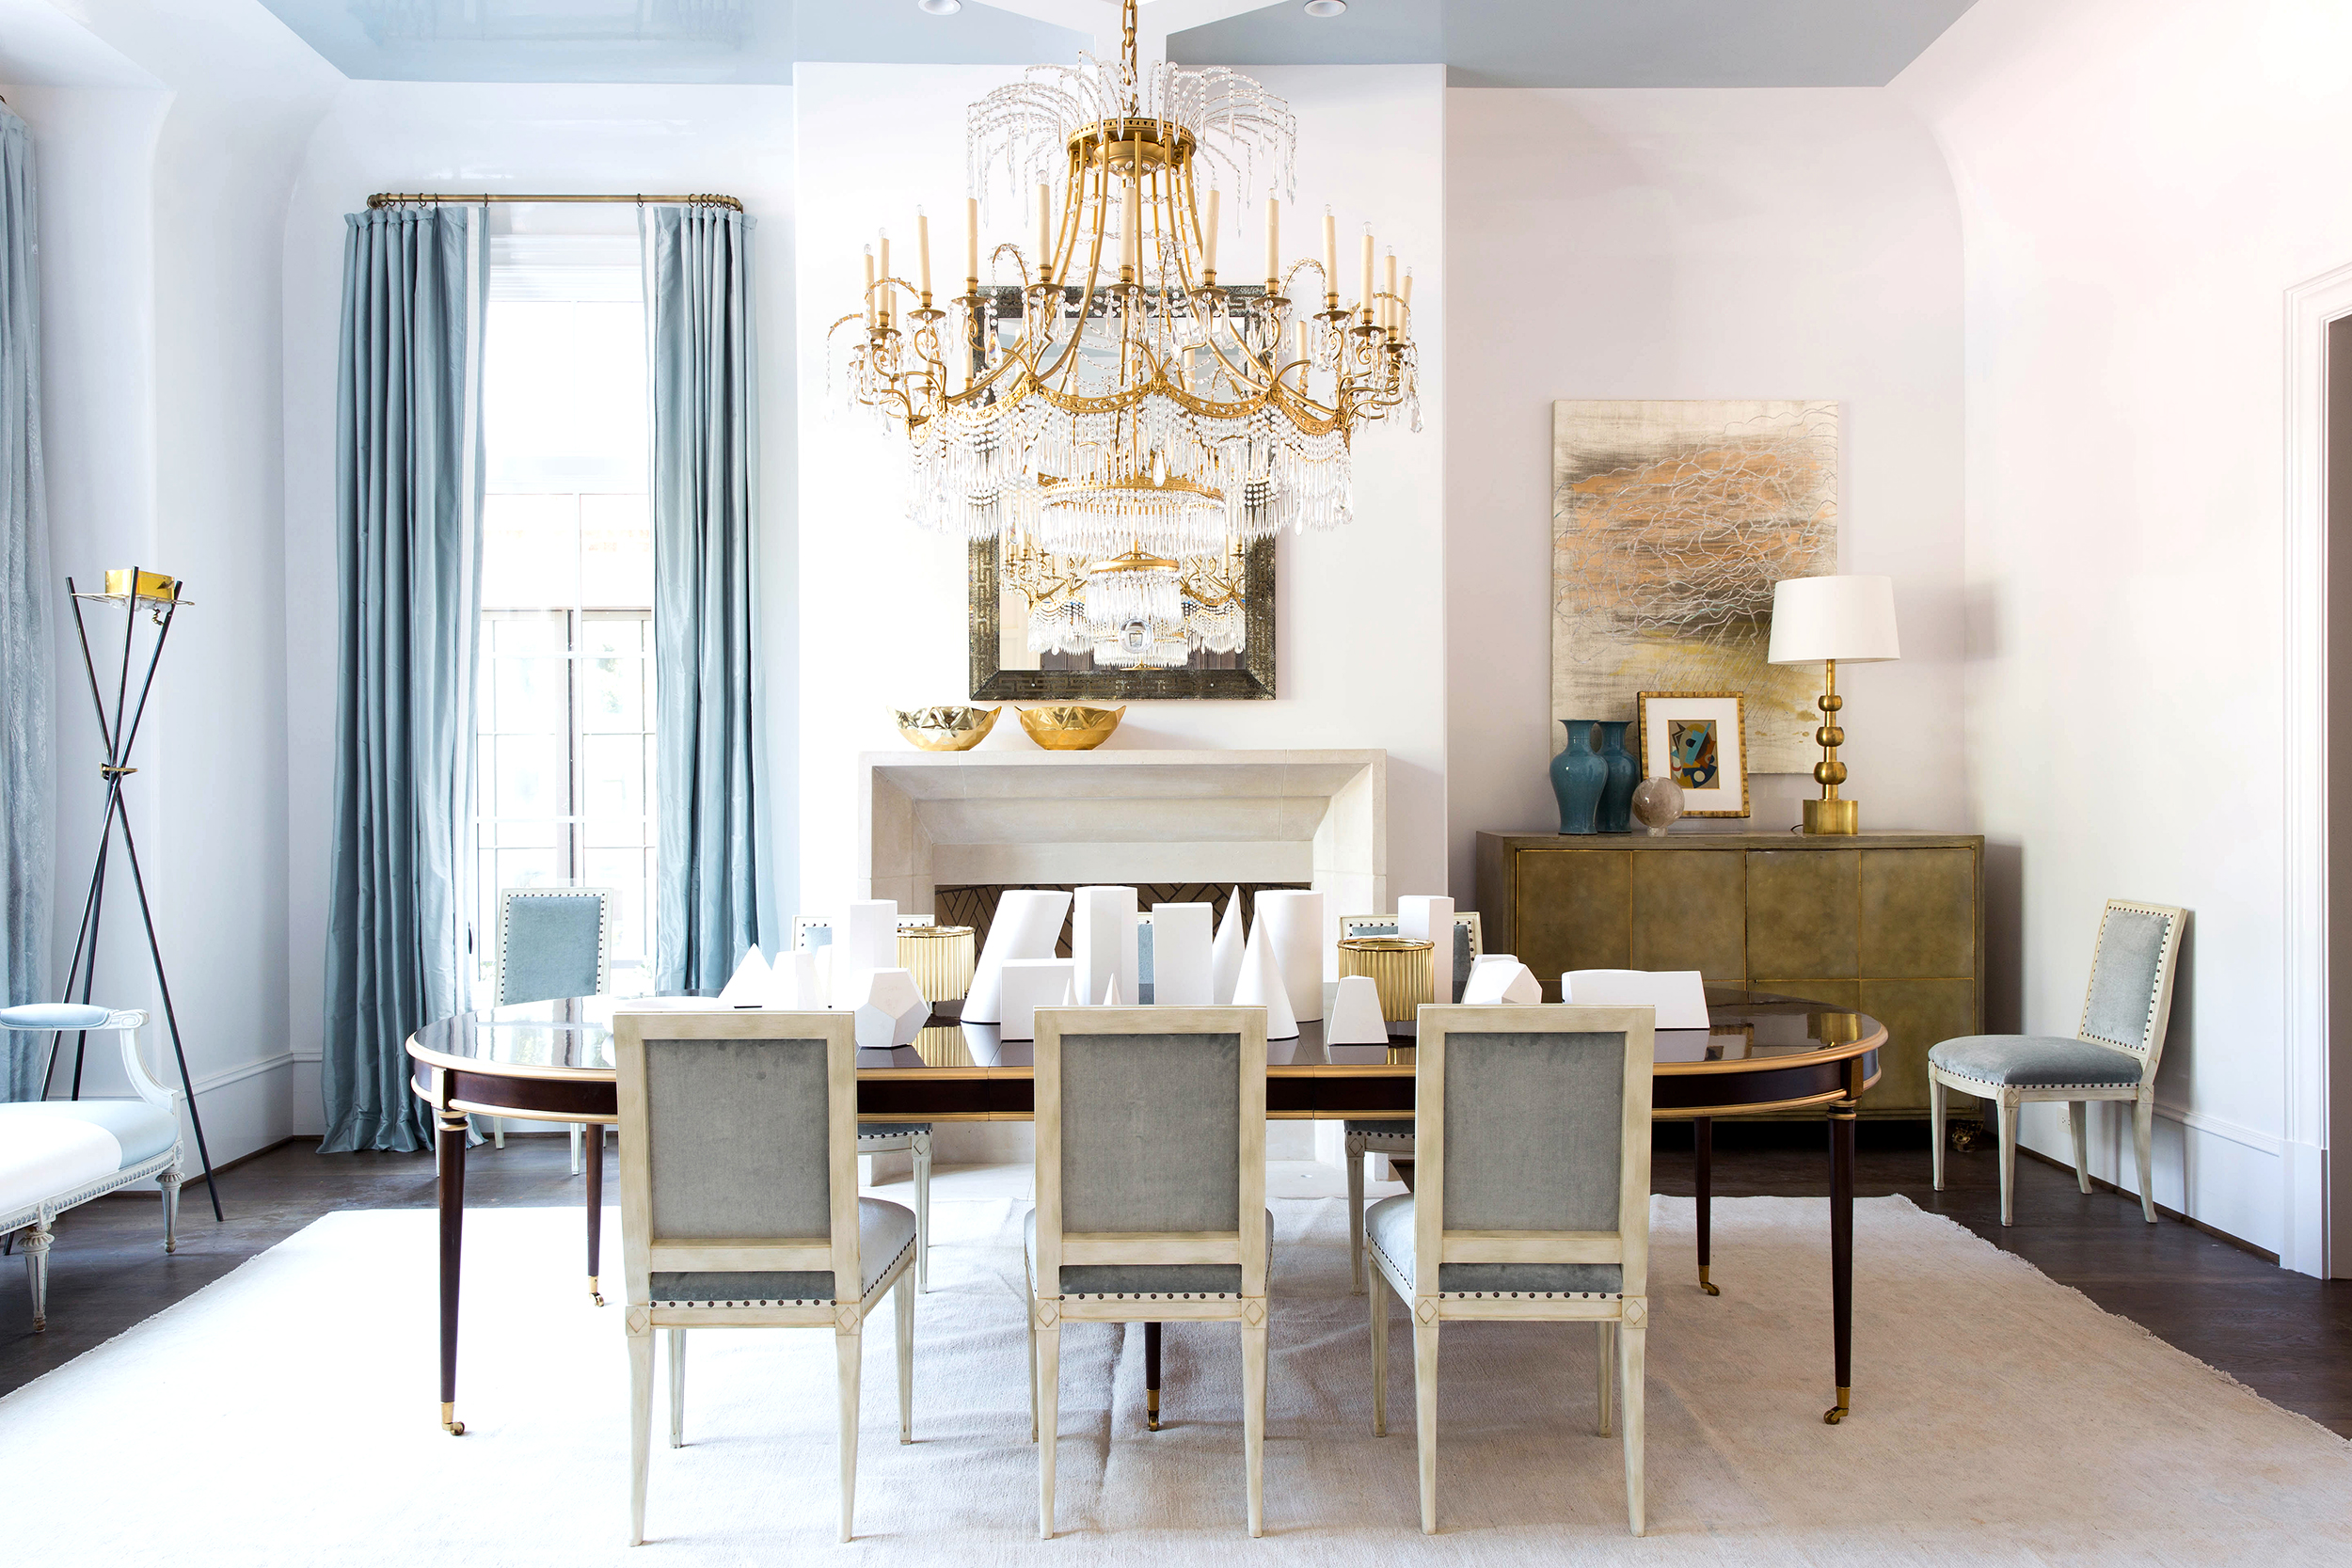 Interior Designer: Suzanne Kasler; Atlanta Homes & Lifestyles Southeastern Showhouse 2016